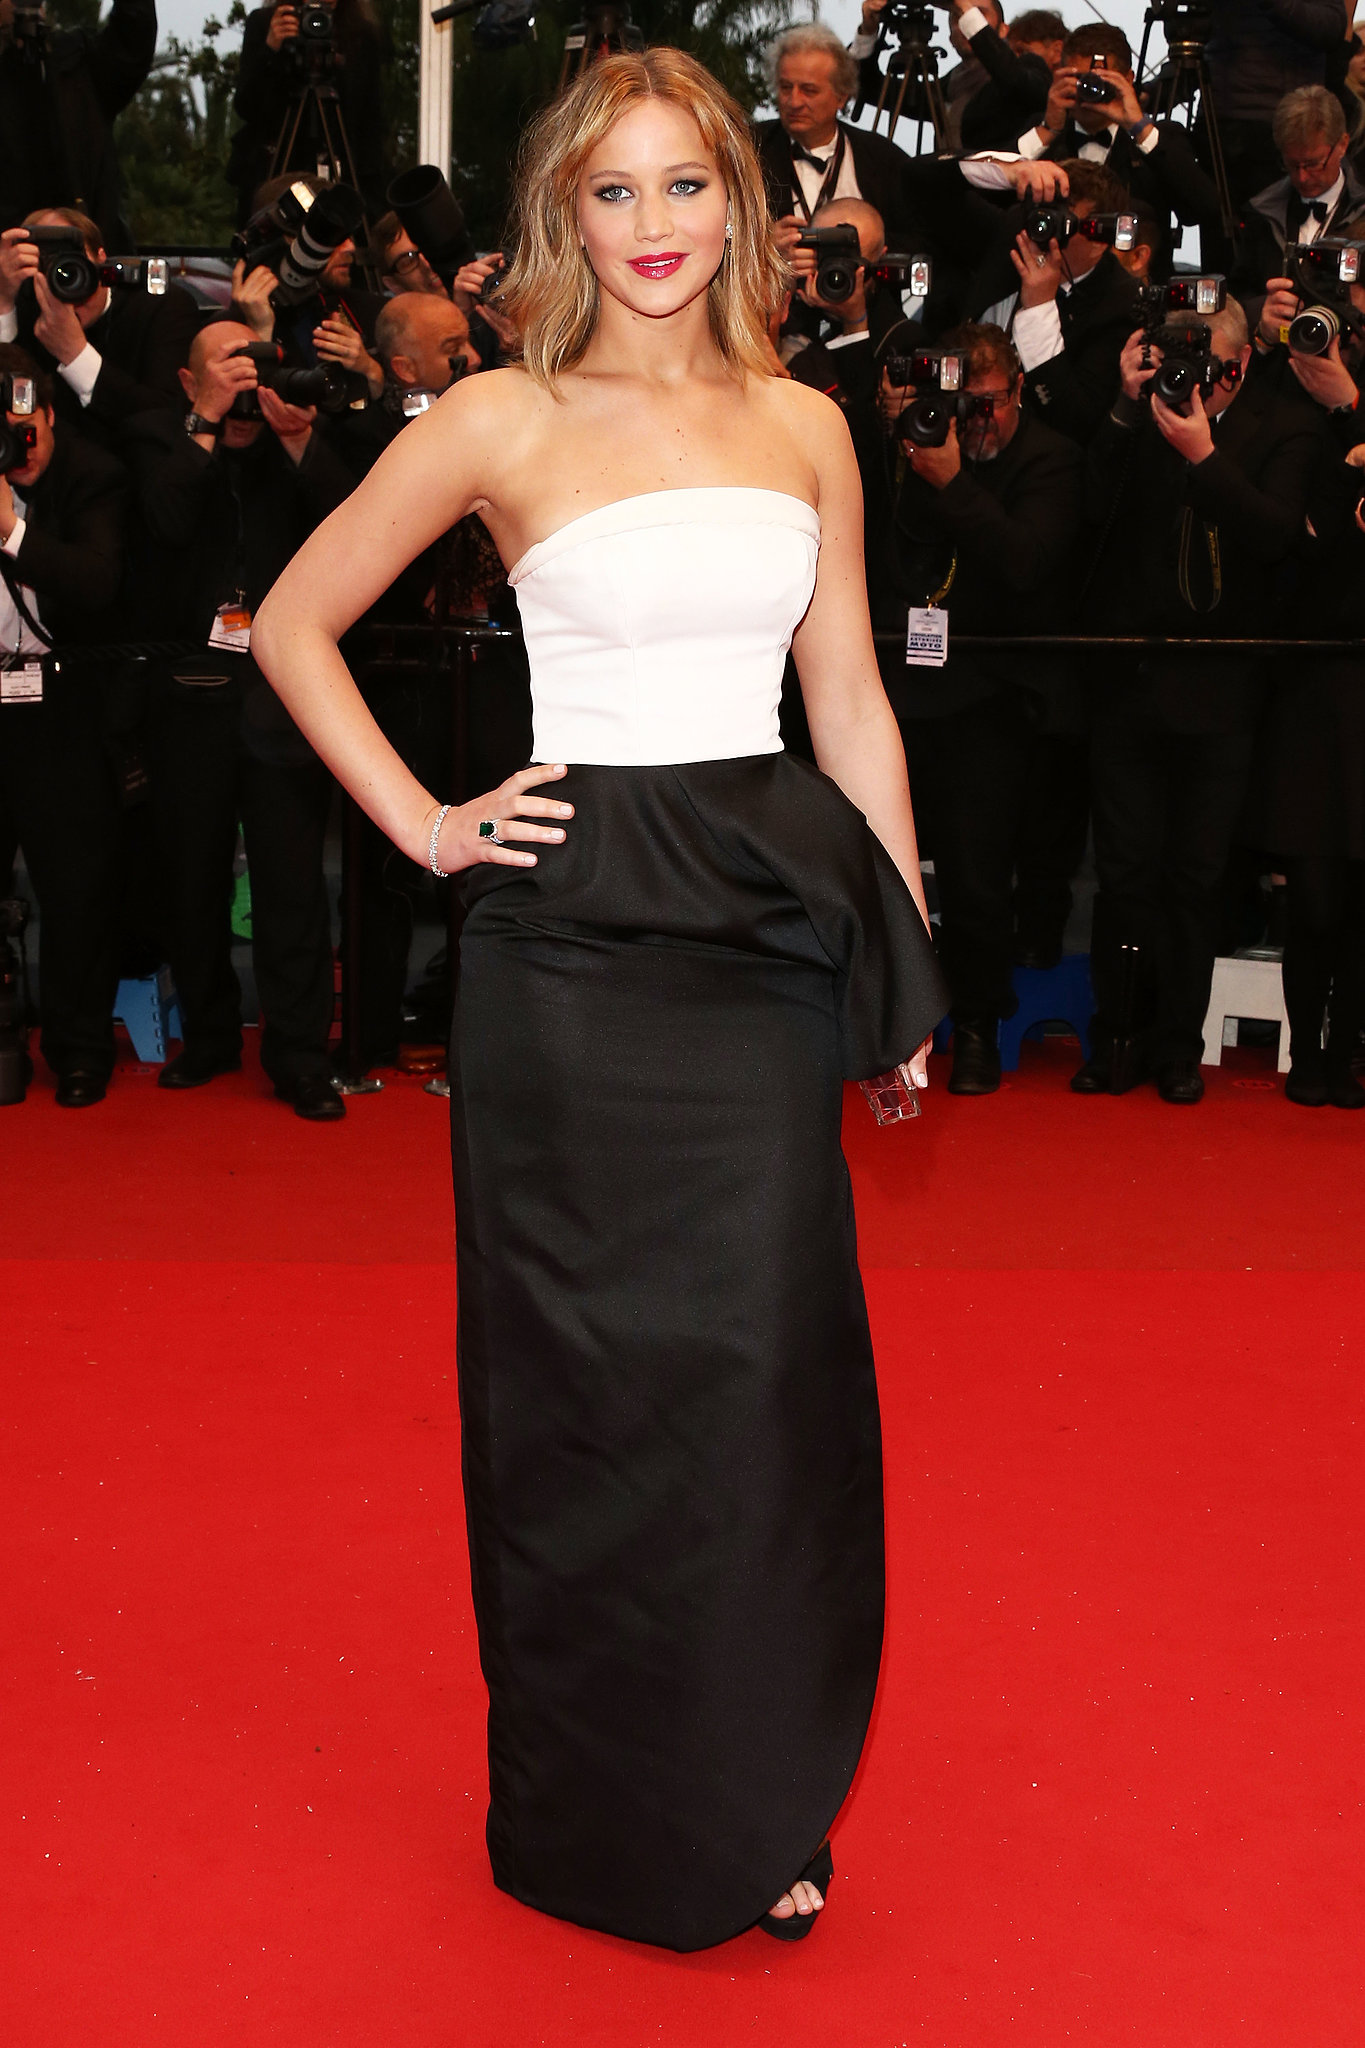 Jennifer Lawrence in a Dior dress at the Jimmy P. premiere.